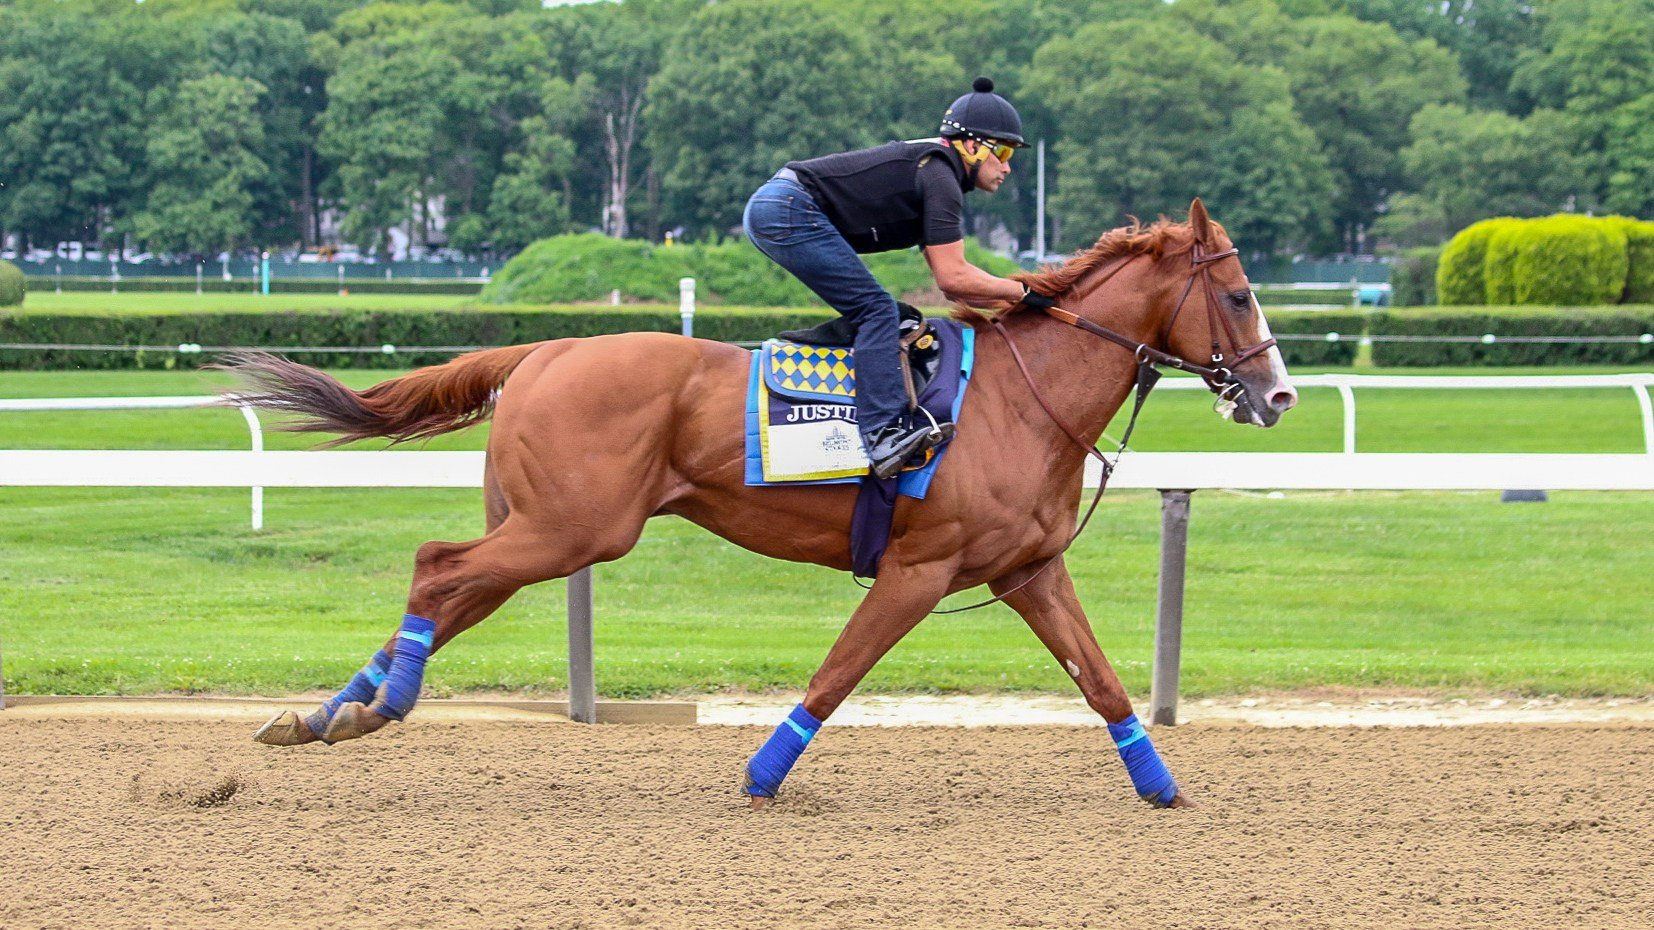 Justify on the track at Belmont training for his run at a Triple Crown Saturday. (WDRB photo by Eric Crawford)